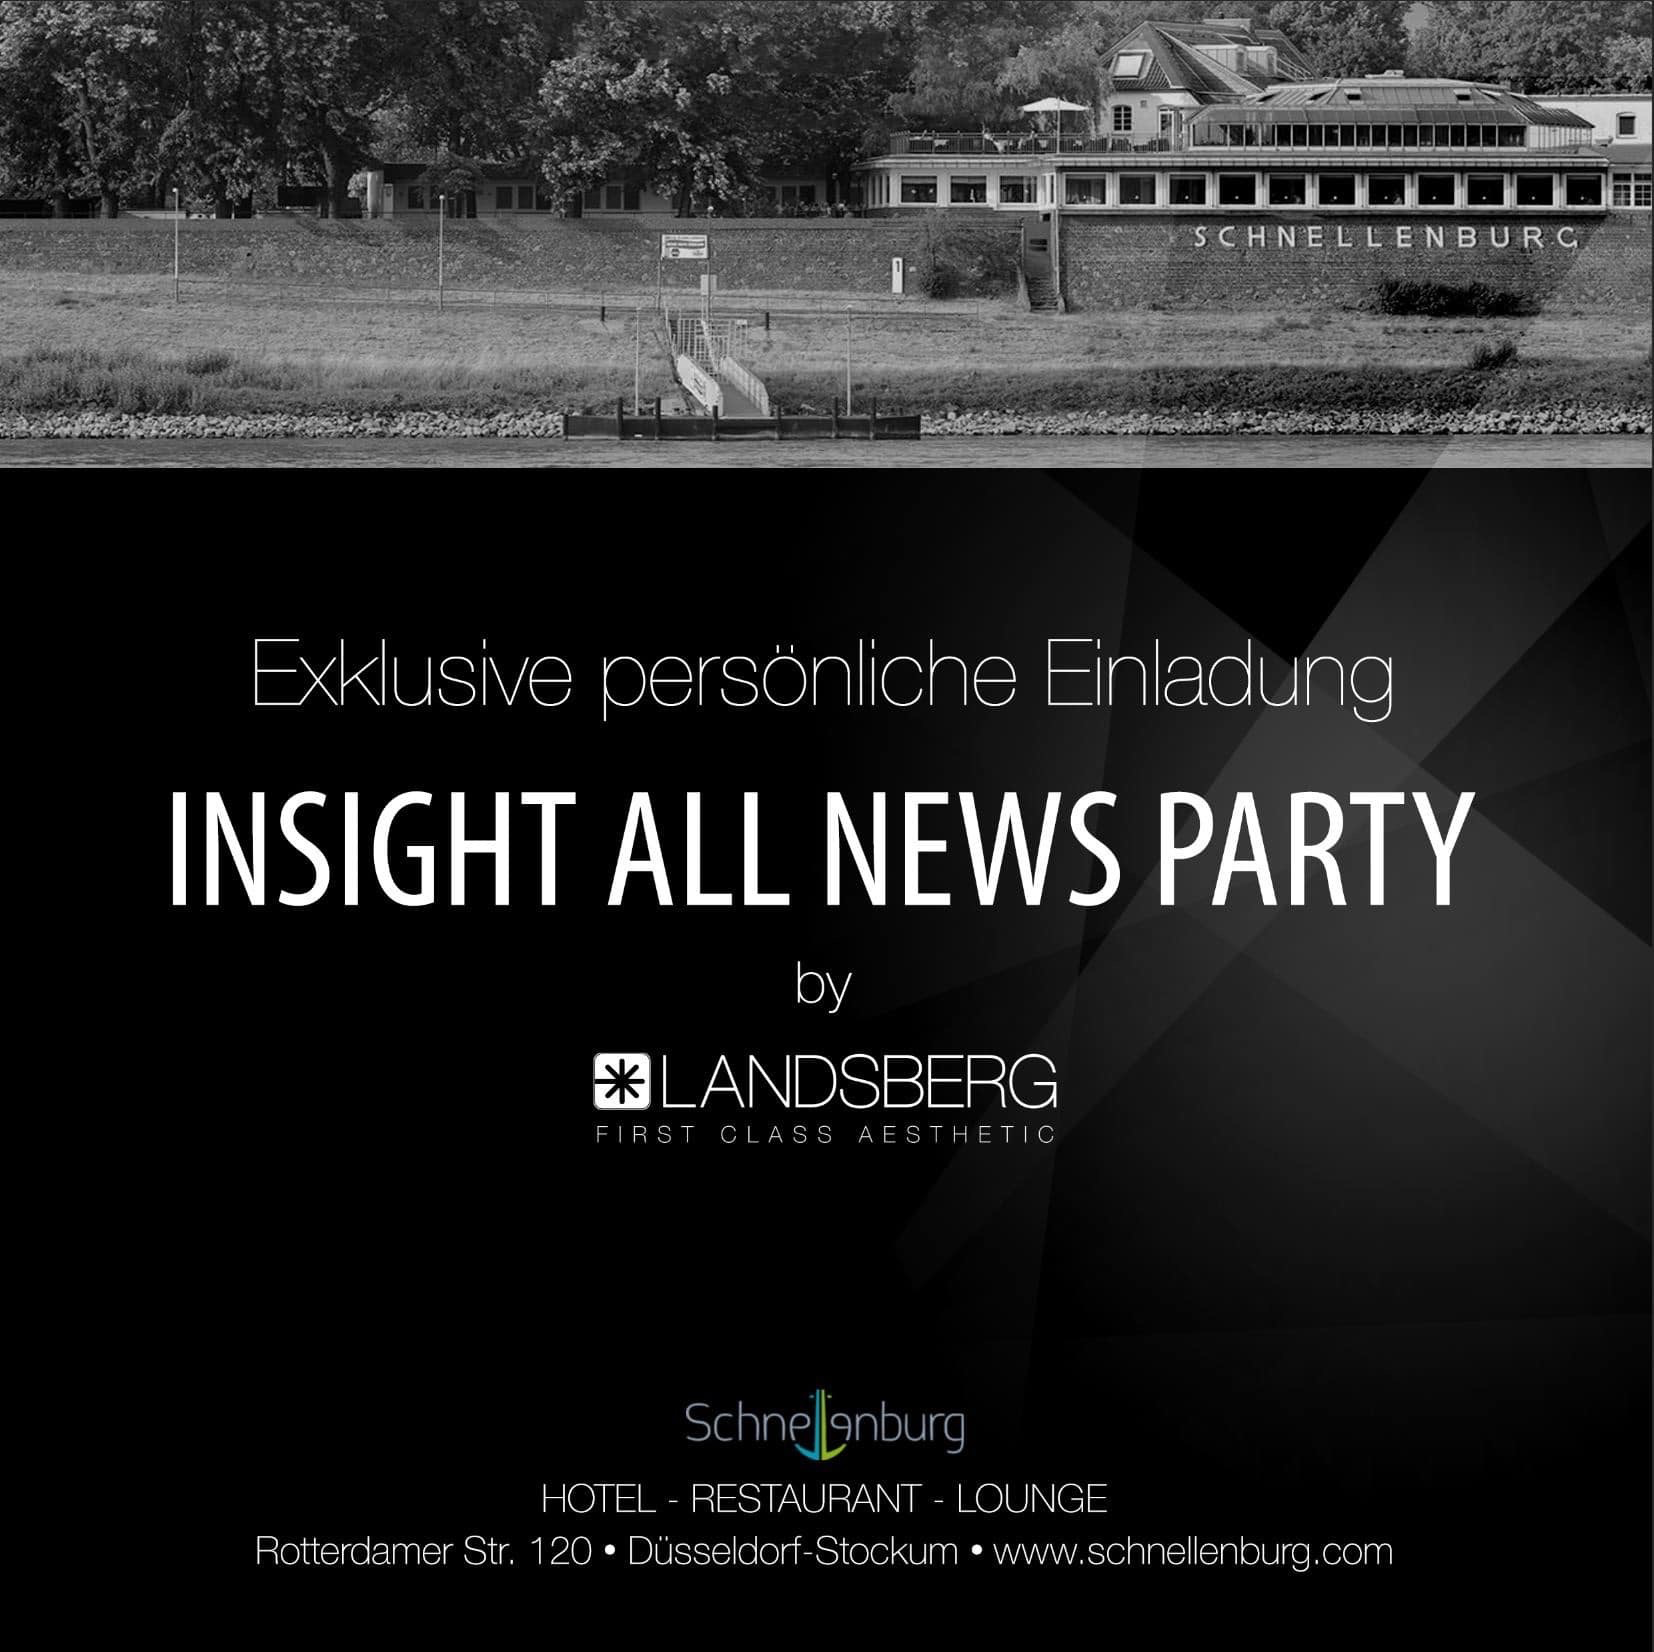 INSIGHT ALL NEWS PARTY